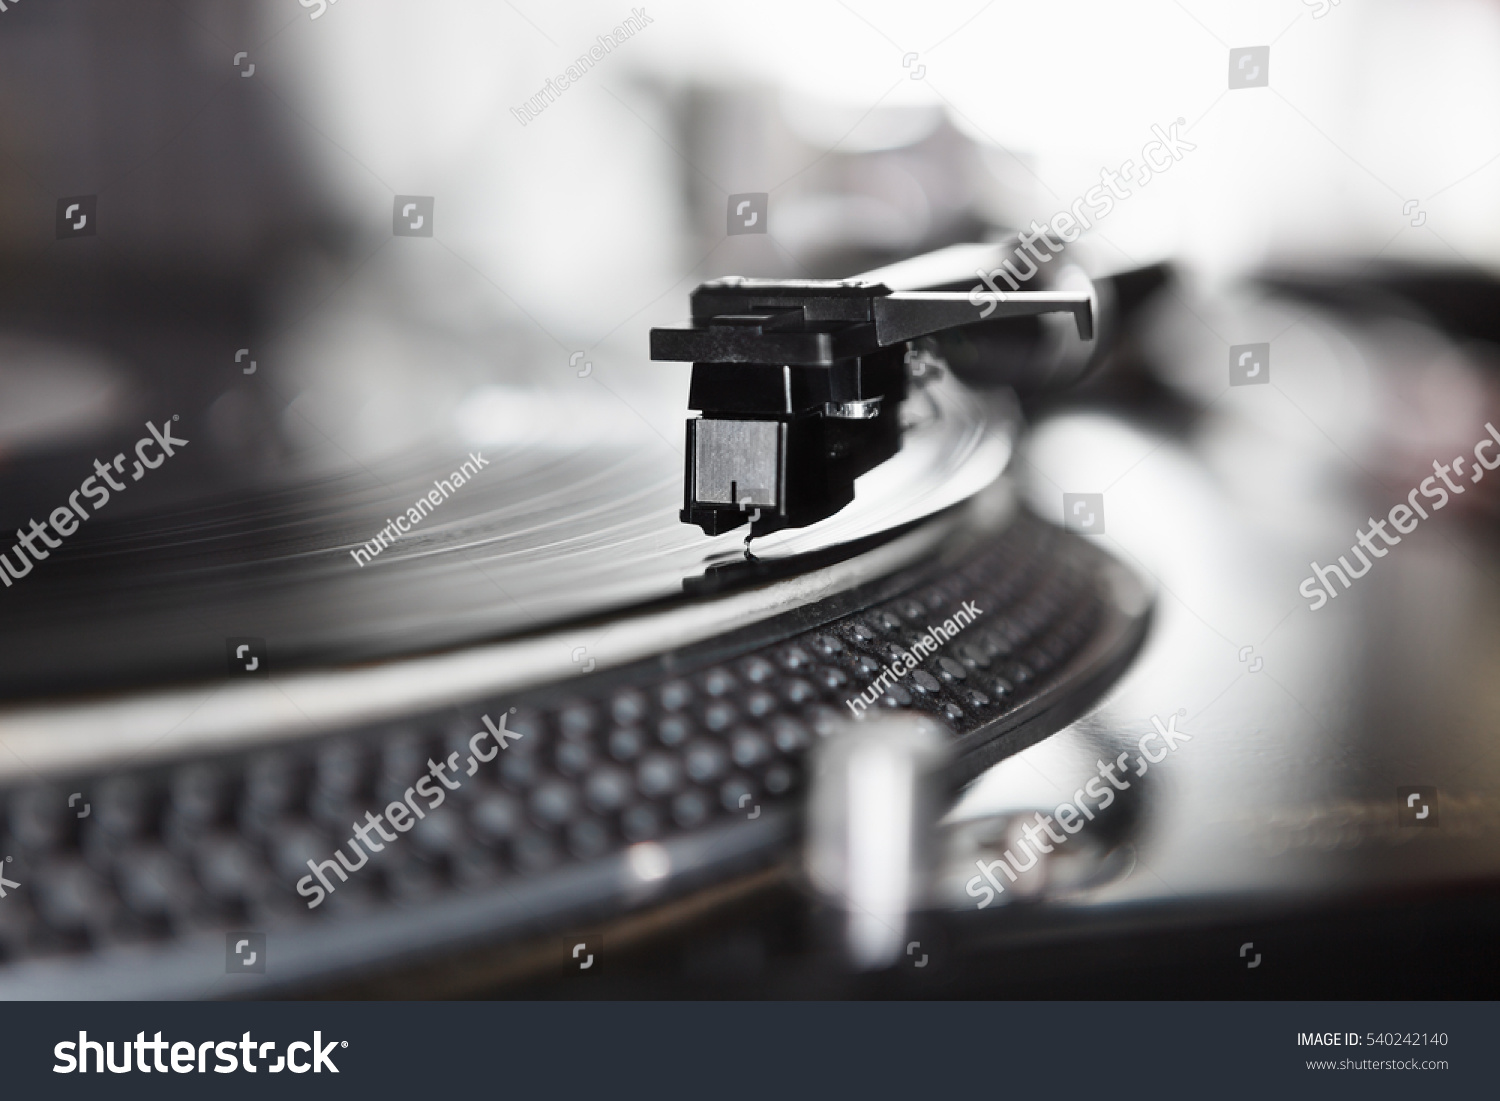 Turntable Vinyl Records Player Playing Analog Stock Photo ...